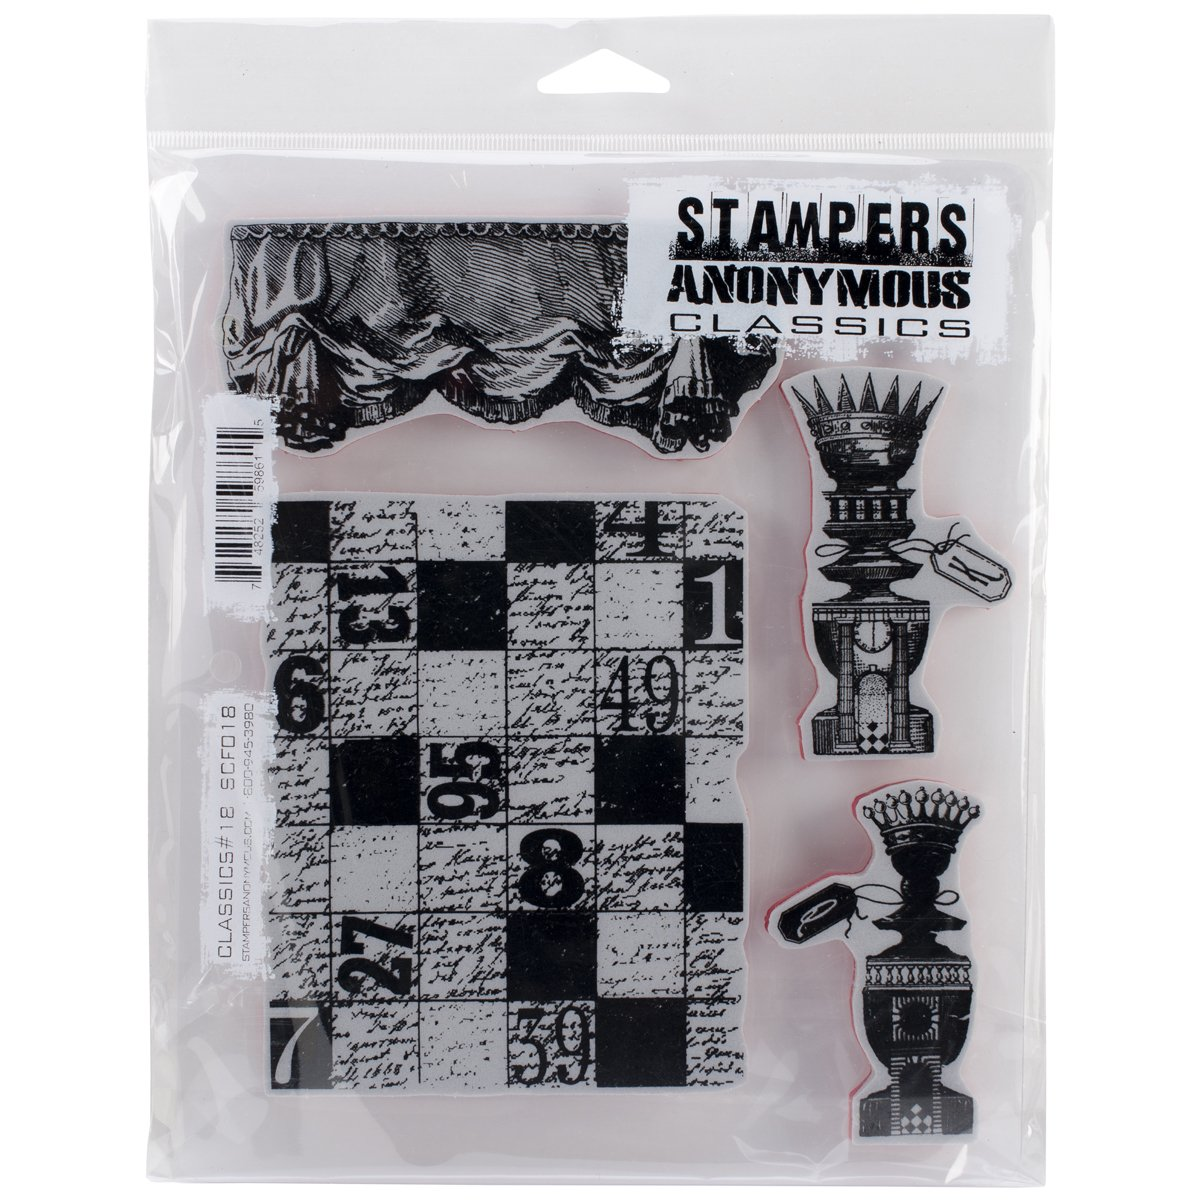 Stampers Anonymous Rubber Stamp Set 7 X8.5 -Classics  12 B00I3ODL8S | Modern Und Elegant In Der Mode